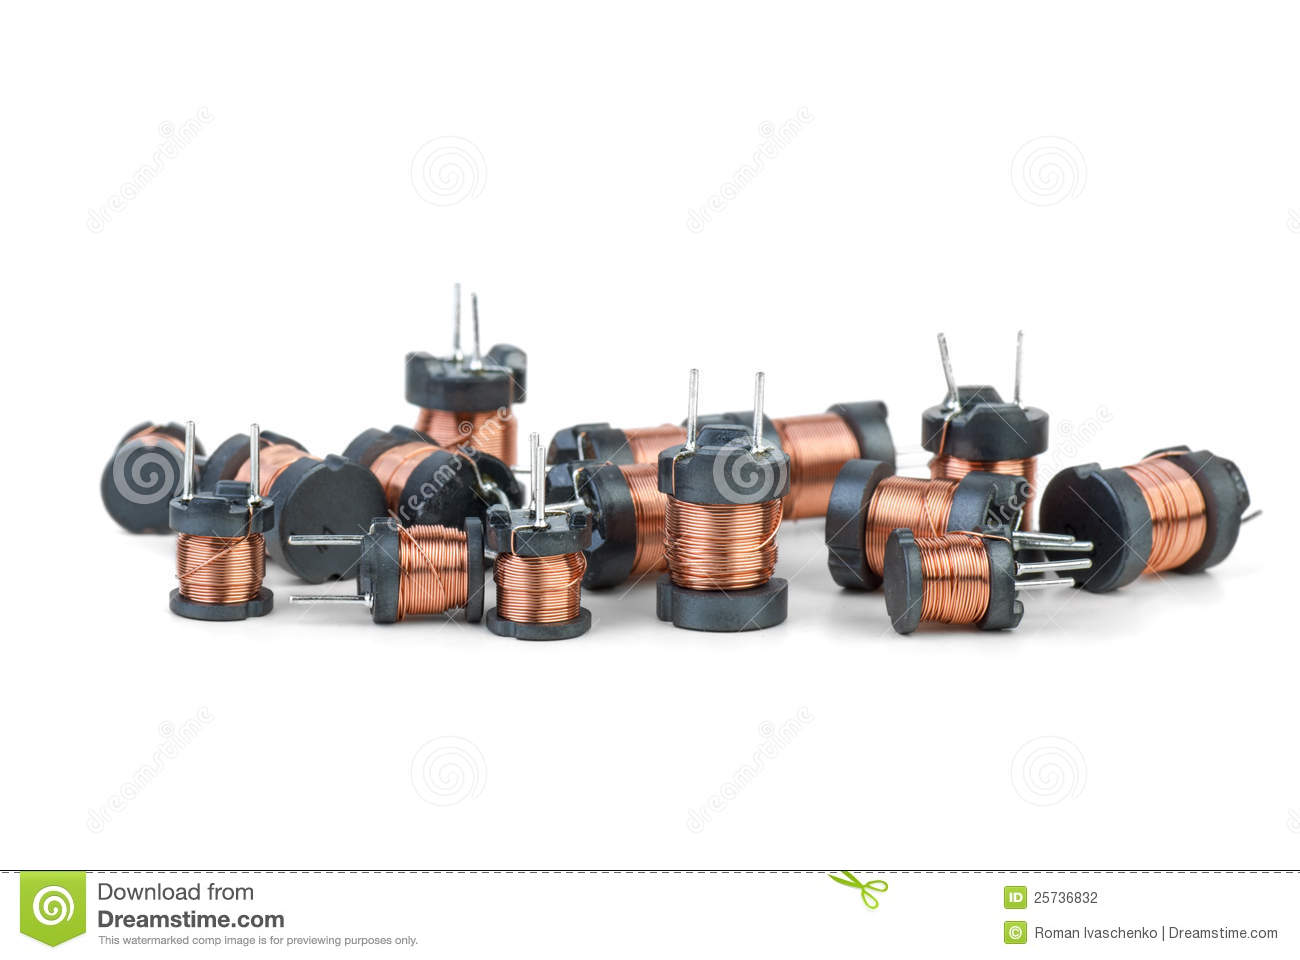 Some tiny inductors